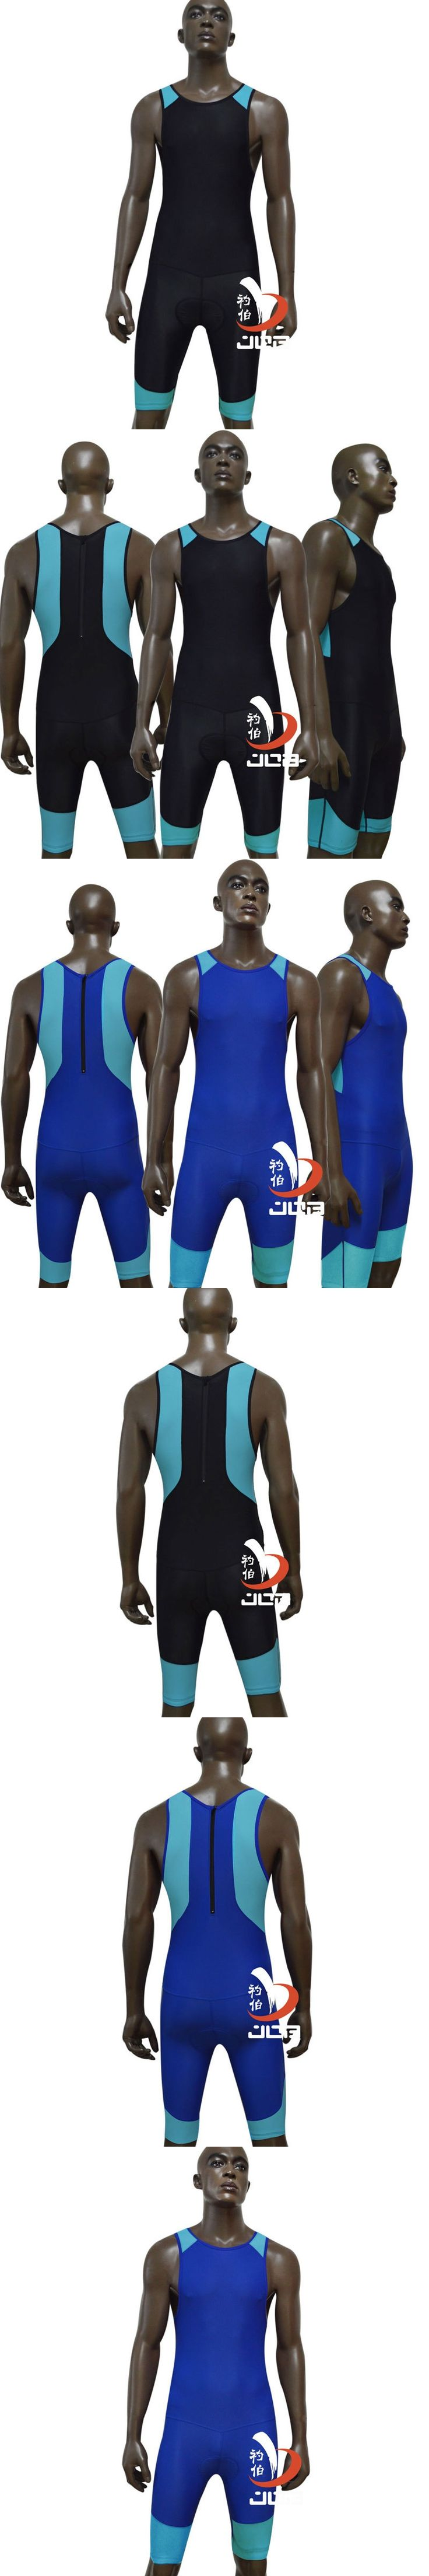 Job Comp Trisuit triathlon wear triathlon suit delivers the performance typically offered by more expensive tri suits